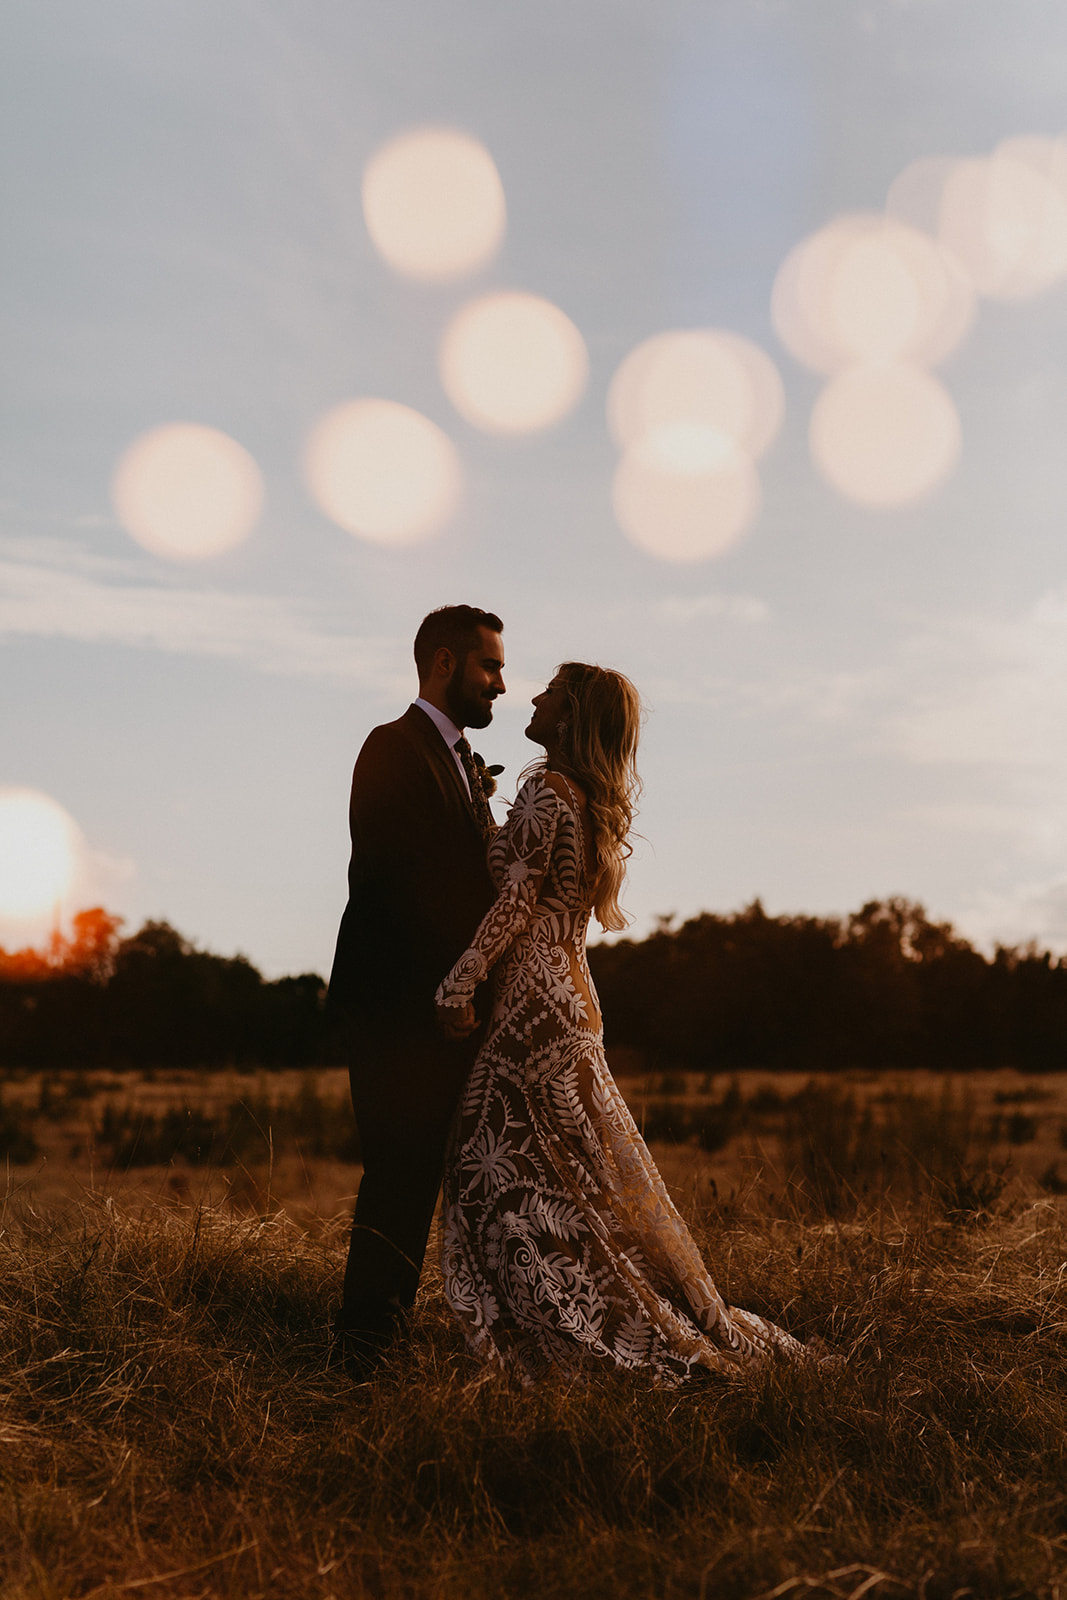 Epoch Co+ | Bride + Groom First Look Portraits | Austin Wedding Venue Prospect House | Adventure + Country + Outdoors + Moody + Bokeh | Austin Wedding Photographer Century Tree Productions